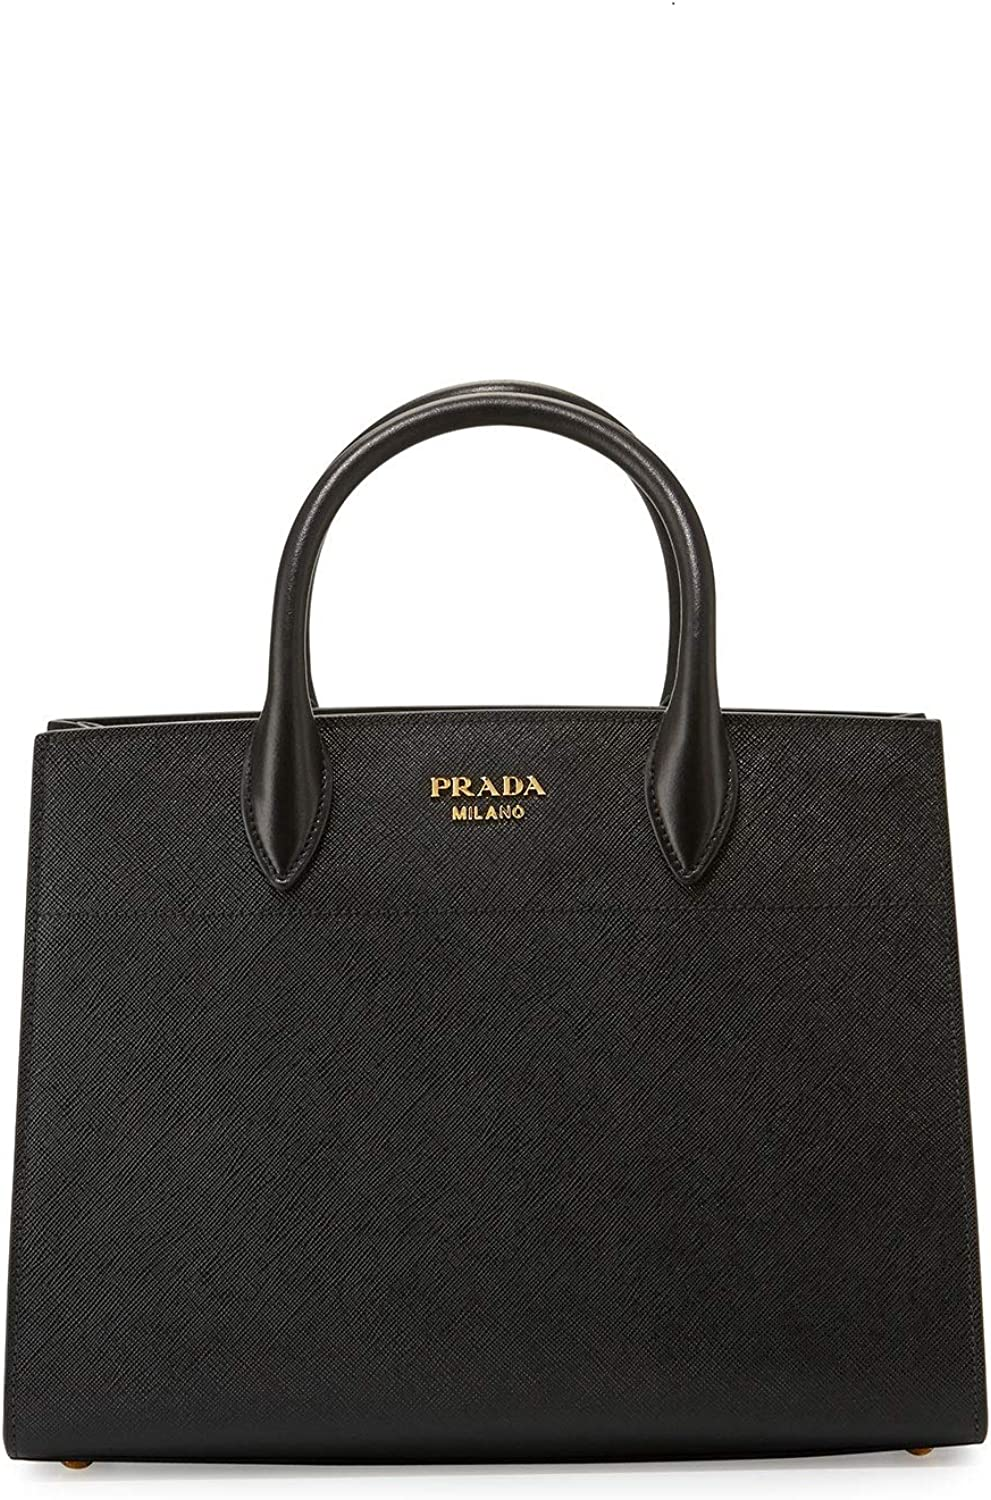 Prada Bibliothèque Tote Saffiano City Leather Black and White Handbag 1BA049